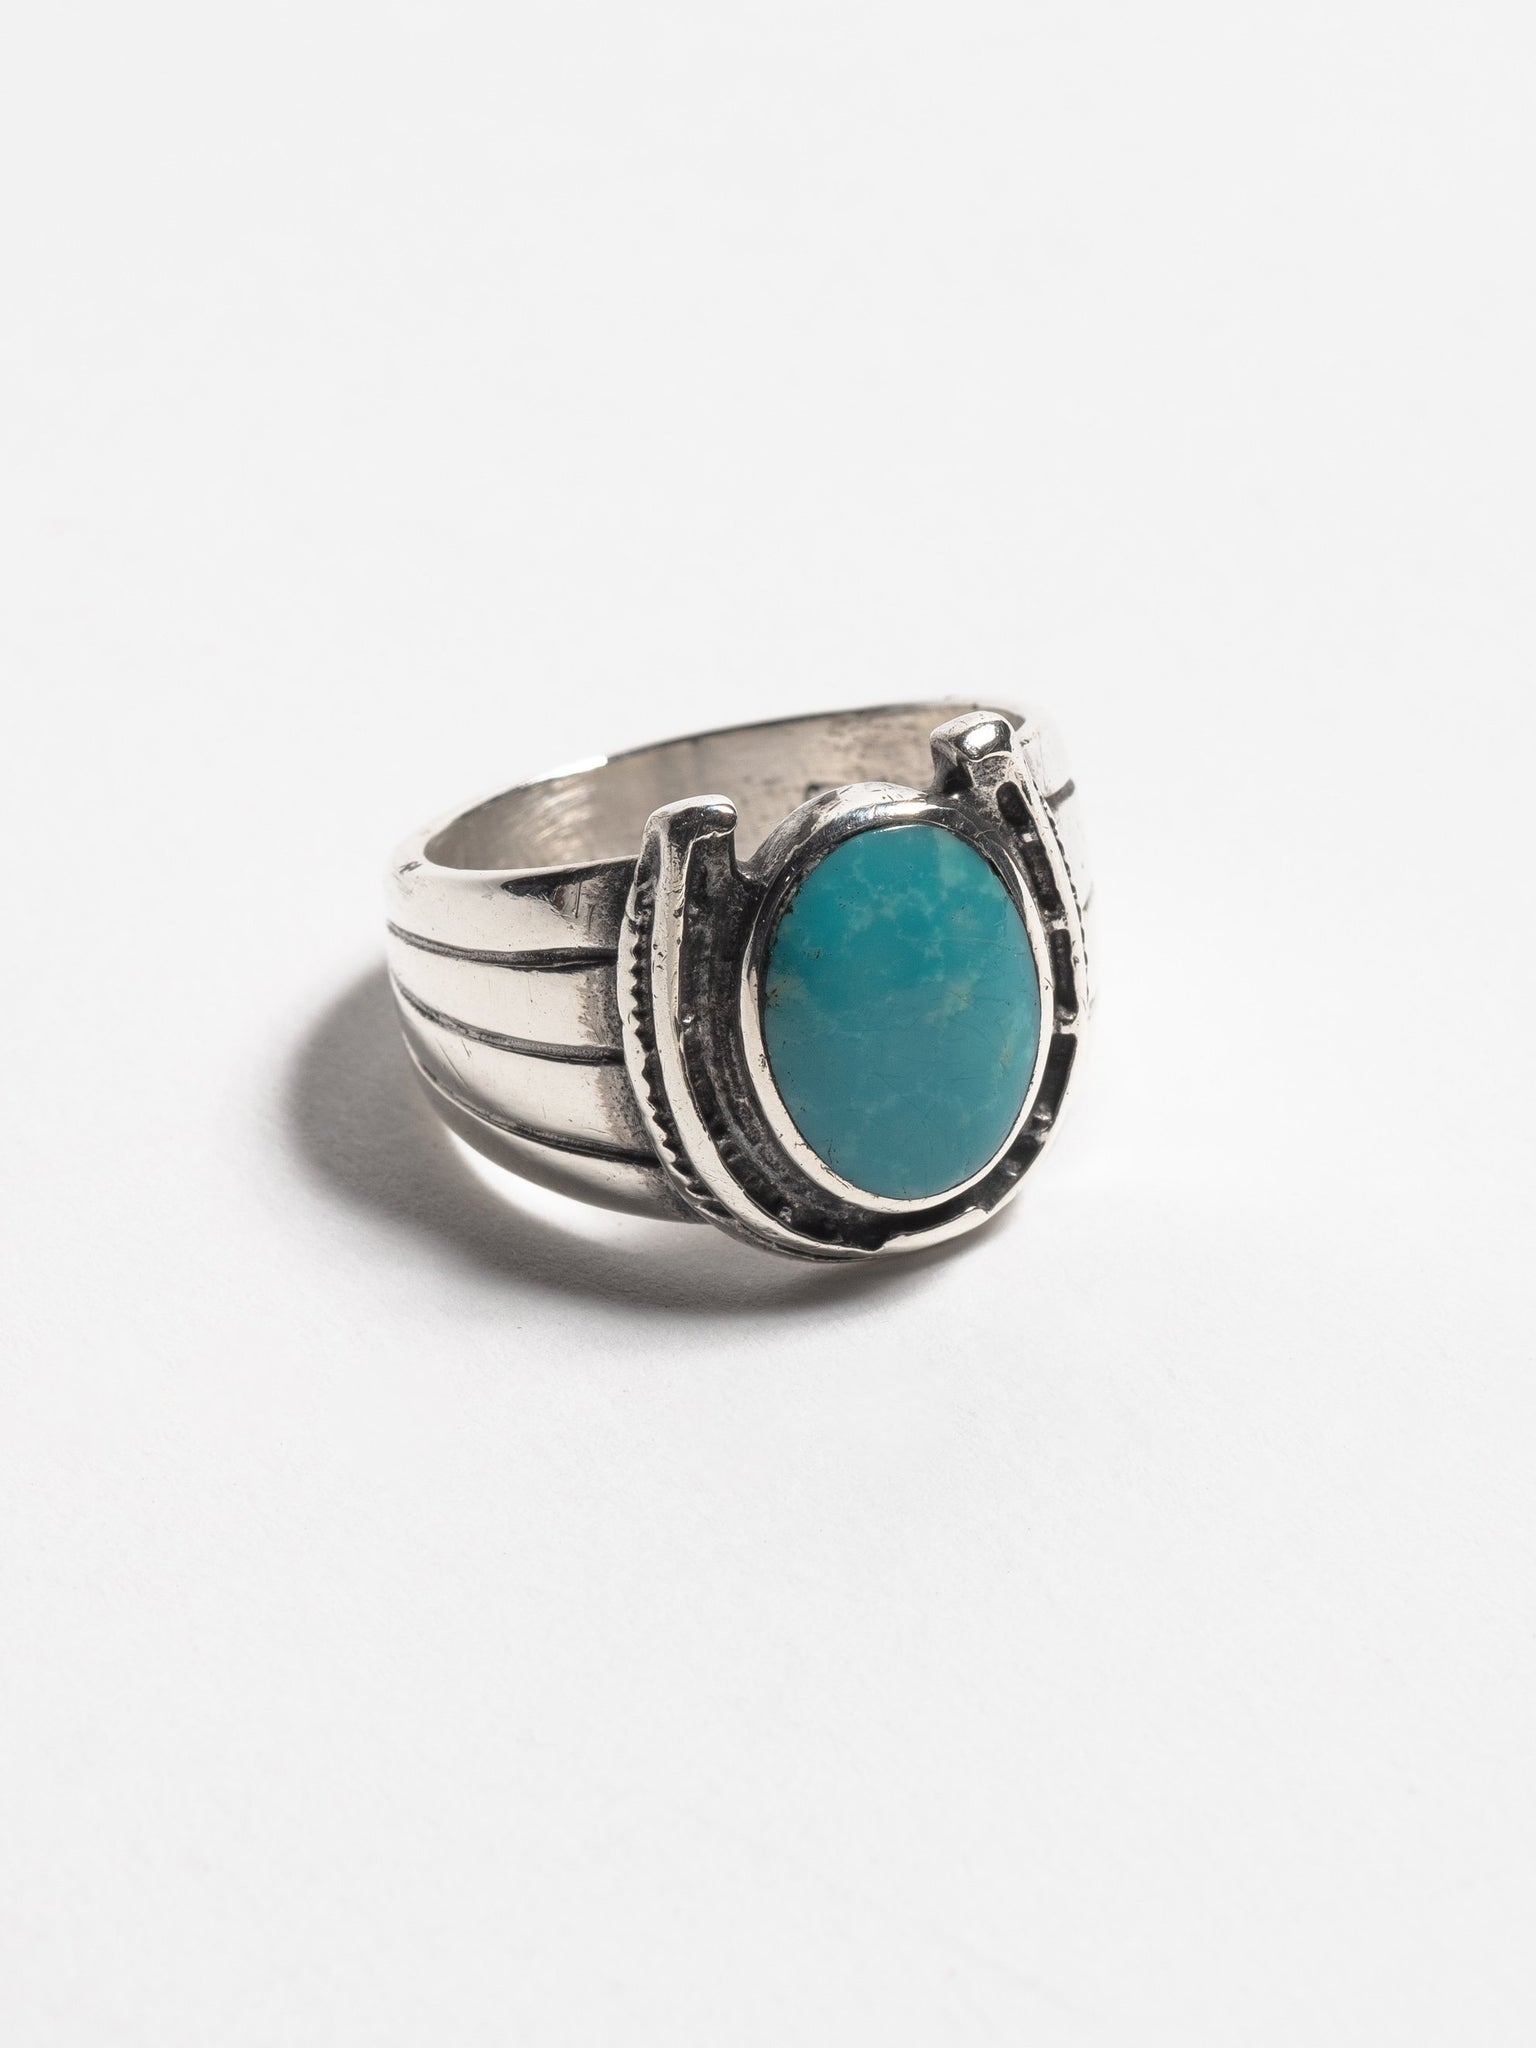 vintage-navajo-sterling-silver-men-s-ring-with-inset-sterling-horseshoe-and-turquoise-stone